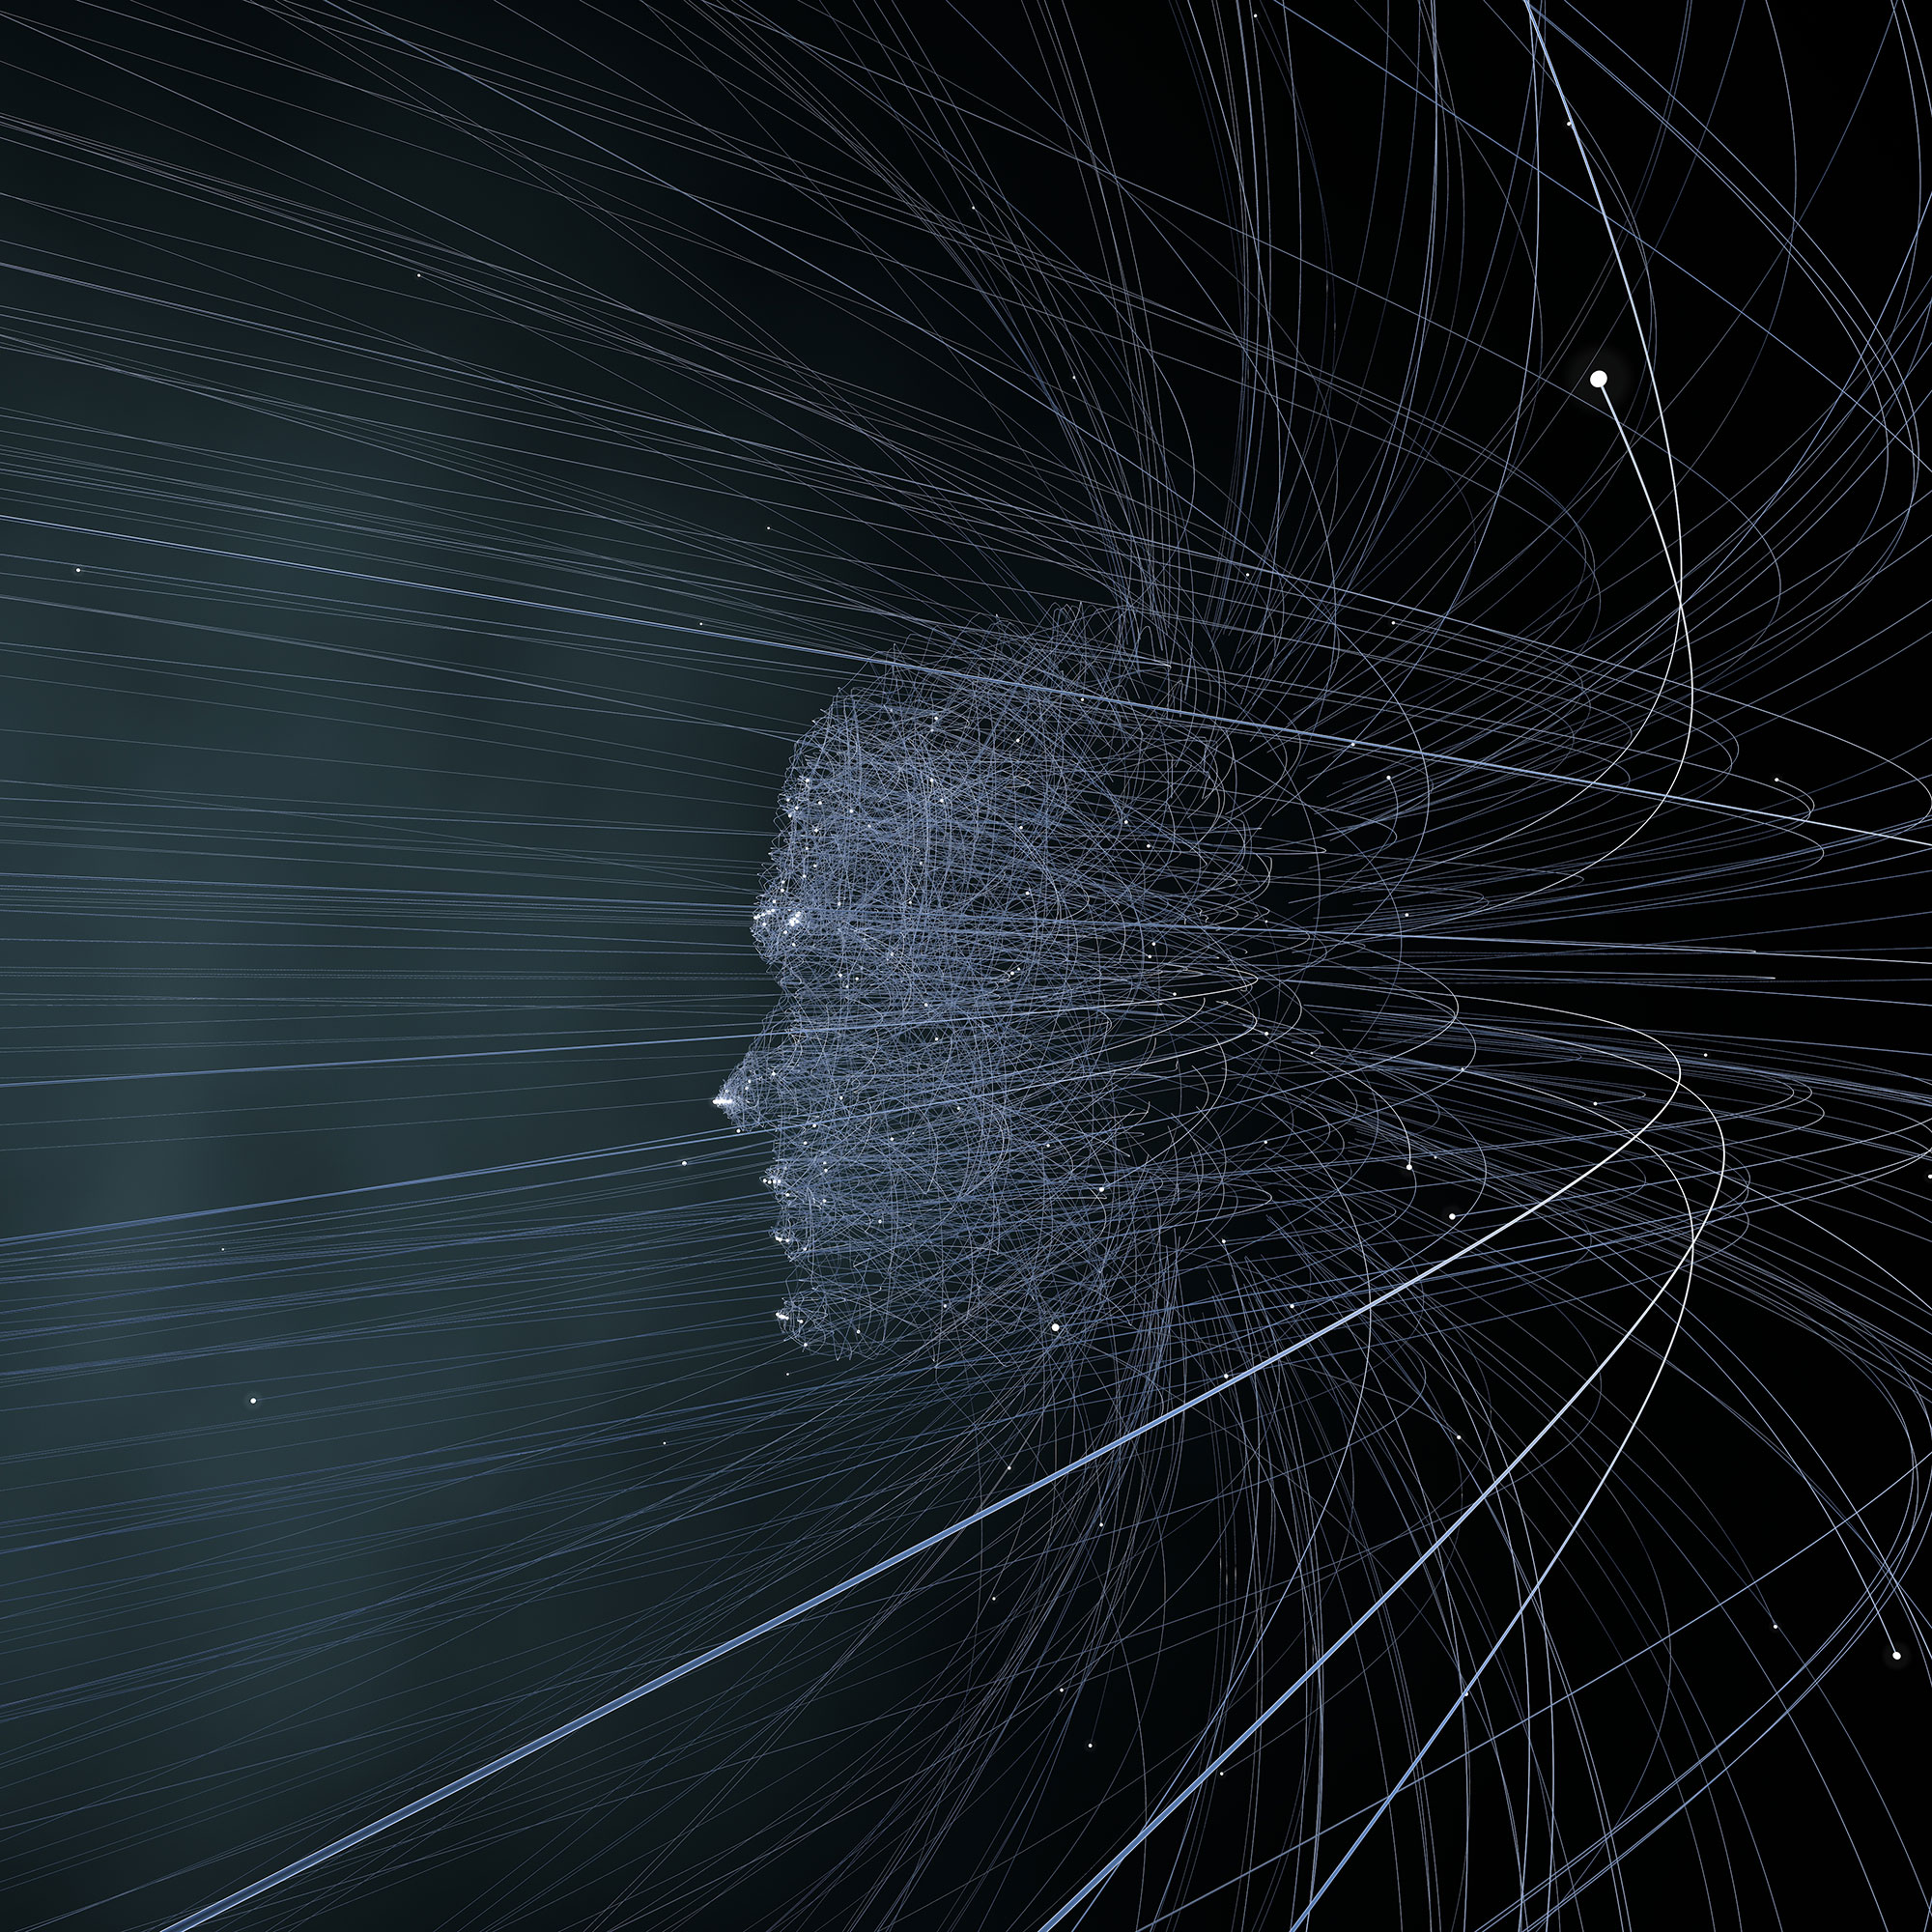 Glenn Marshall's Emergent Artwork 'Particle Man' featured in In\Formation is available as a limited edition Digital Print (edition of 5) and Digital Edition (edition of 100) via  Sedition.   The Digital Print Edition is in the collection of the Arts Council of Northern Ireland. Please inquire via email for pricing and availability.